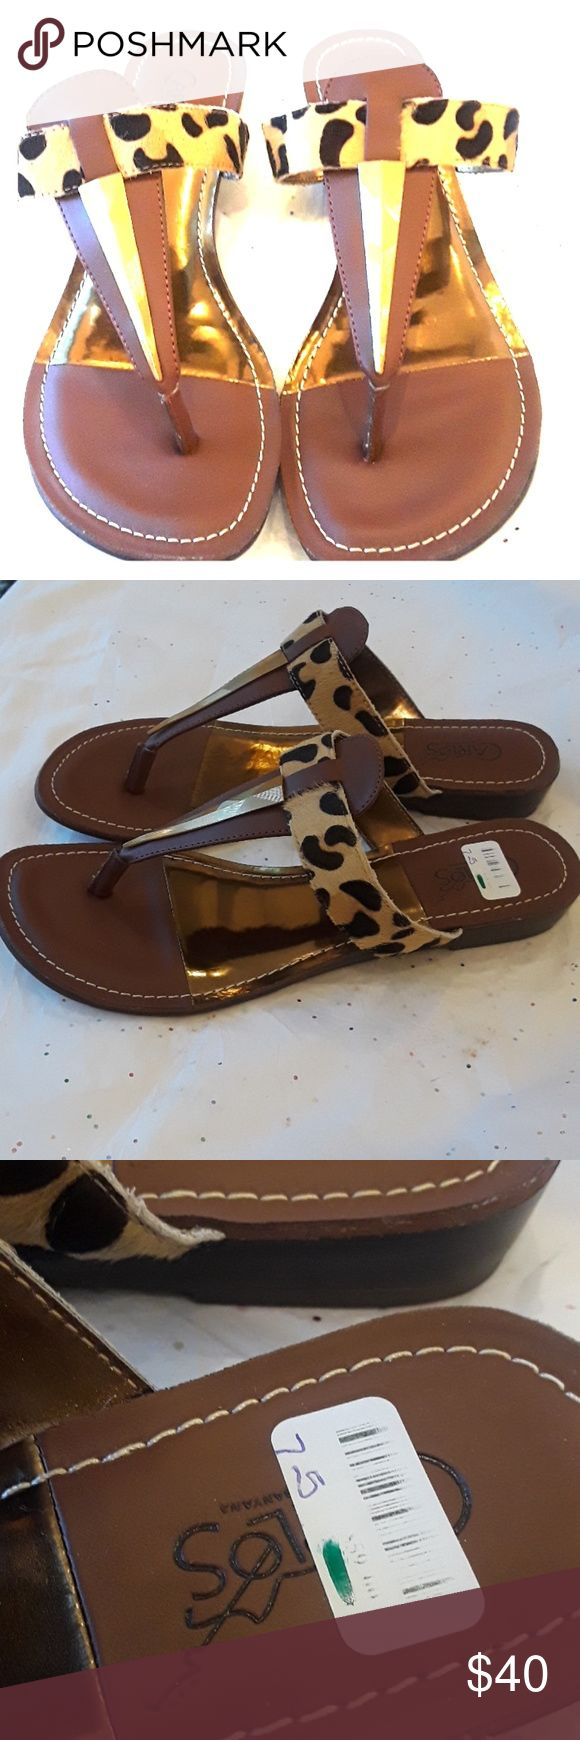 Carlos Santana Leopard Print Sandals Authentic Carlos Santana Leopard Print shoes. Size 7.5 , never used, beautiful print. Classic look that's comfortable.  Ask questions as all sales are final,  Happy Poshing. Carlos Santana Shoes Sandals